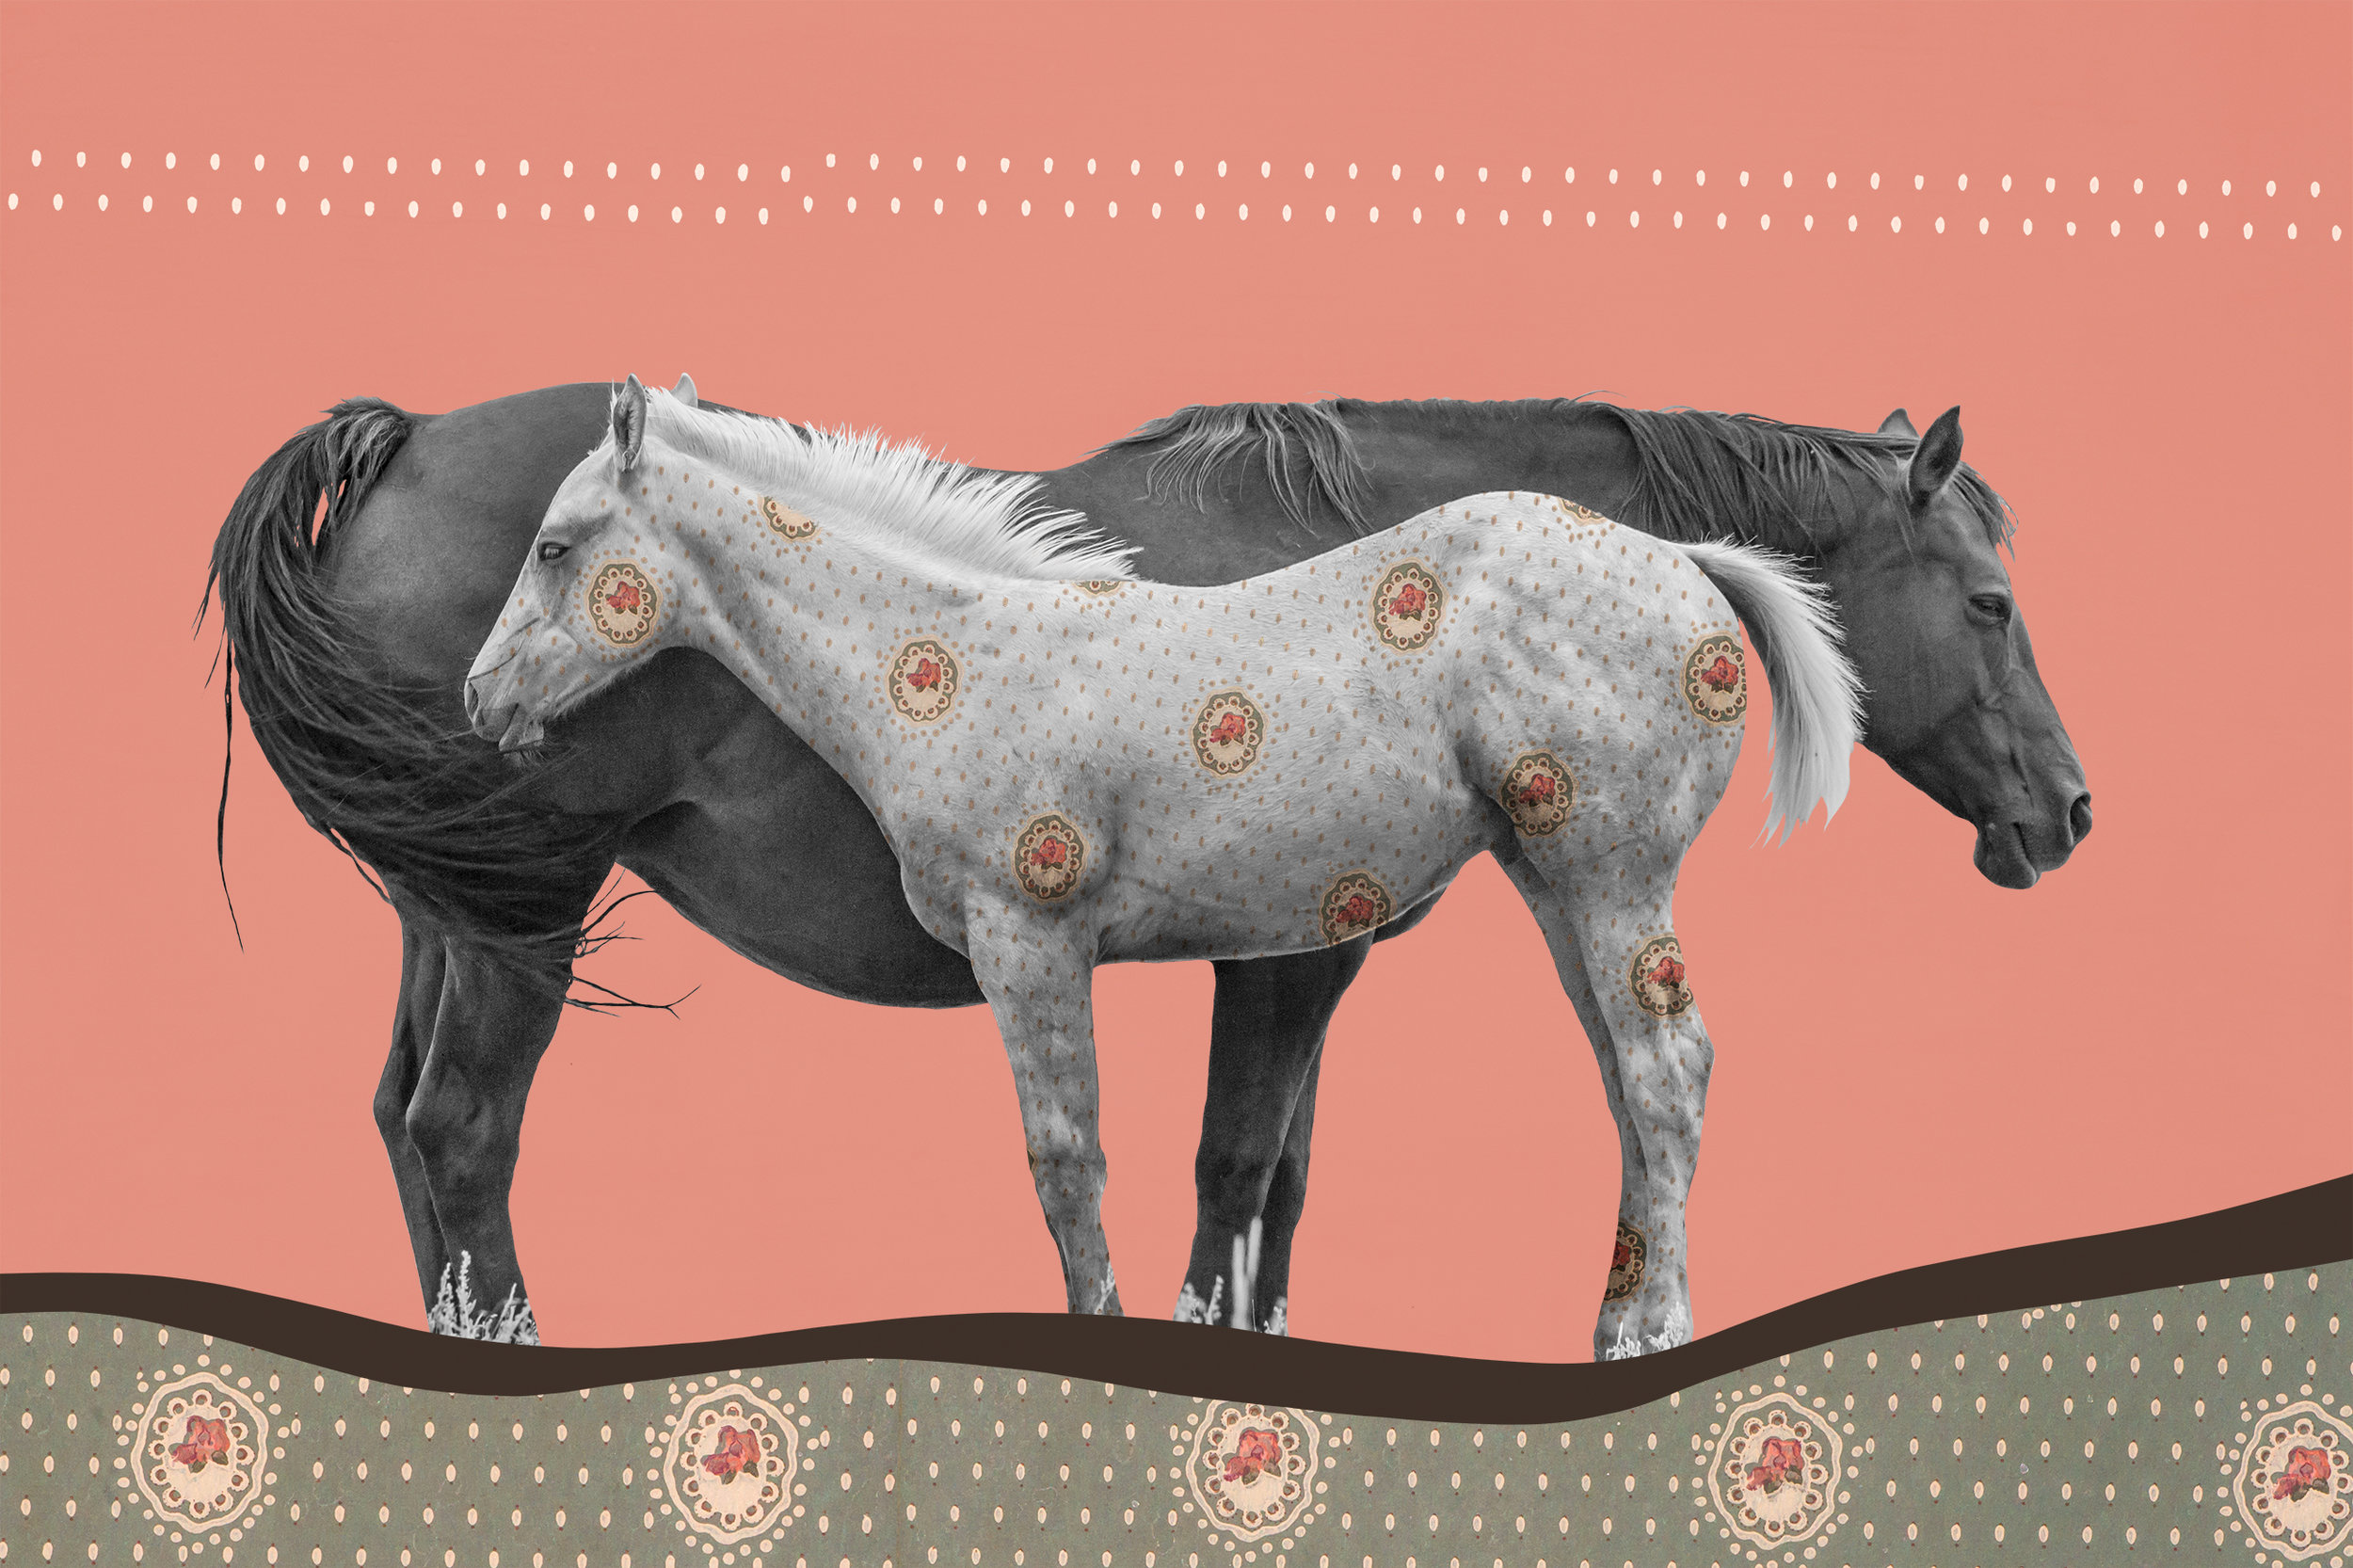 """{ Horse No. 28 }  I photographed this mare and her filly on a ranch in Montana's aptly-named Paradise Valley. I photographed this vintage wallpaper in the Virginian Hotel in Medicine Bow, Wyoming. Now listed on the National Historic Register, The Virginian was completed in 1911 and boasts over 30 guest rooms within its three and a half stories. The building was at the time the largest structure between Denver and Salt Lake City and was built of concrete blocks containing sand drawn from the Medicine Bow River. It was named after the famous 1902 novel, also titled """"The Virginian"""", which was set in Medicine Bow and is credited as being the first Western adventure novel, paving the way for the revered genre which still flourishes today. This wallpaper is original to the early 1900s and the hotel itself has changed little since then. It still serves as a restaurant, watering hole, and gathering hub for locals and a unique place to stay for those traveling through Wyoming's wide and vast Carbon County."""